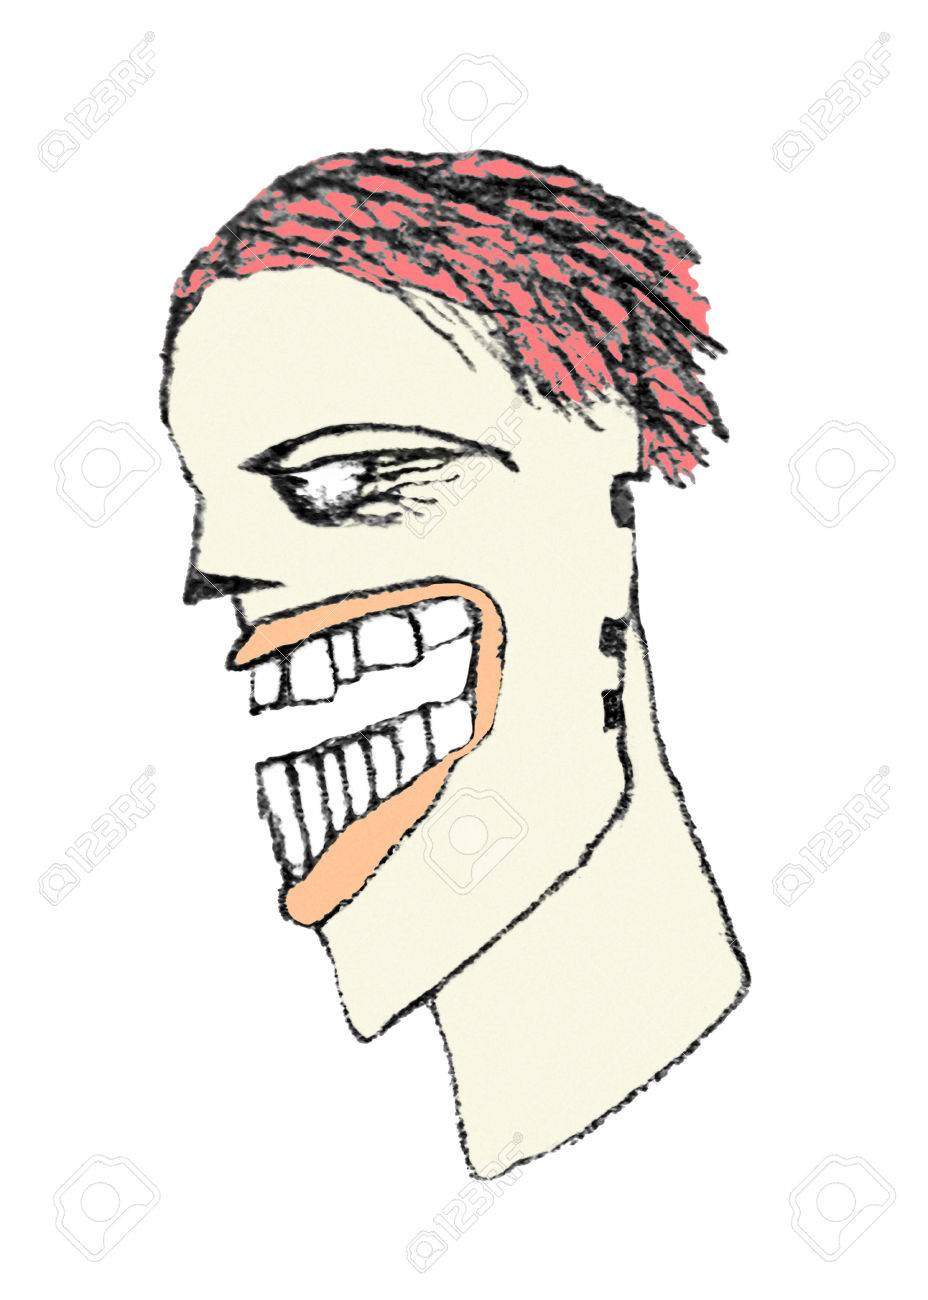 Pencil drawing technique side view portrait illustration of man with with evil eyes looking and red